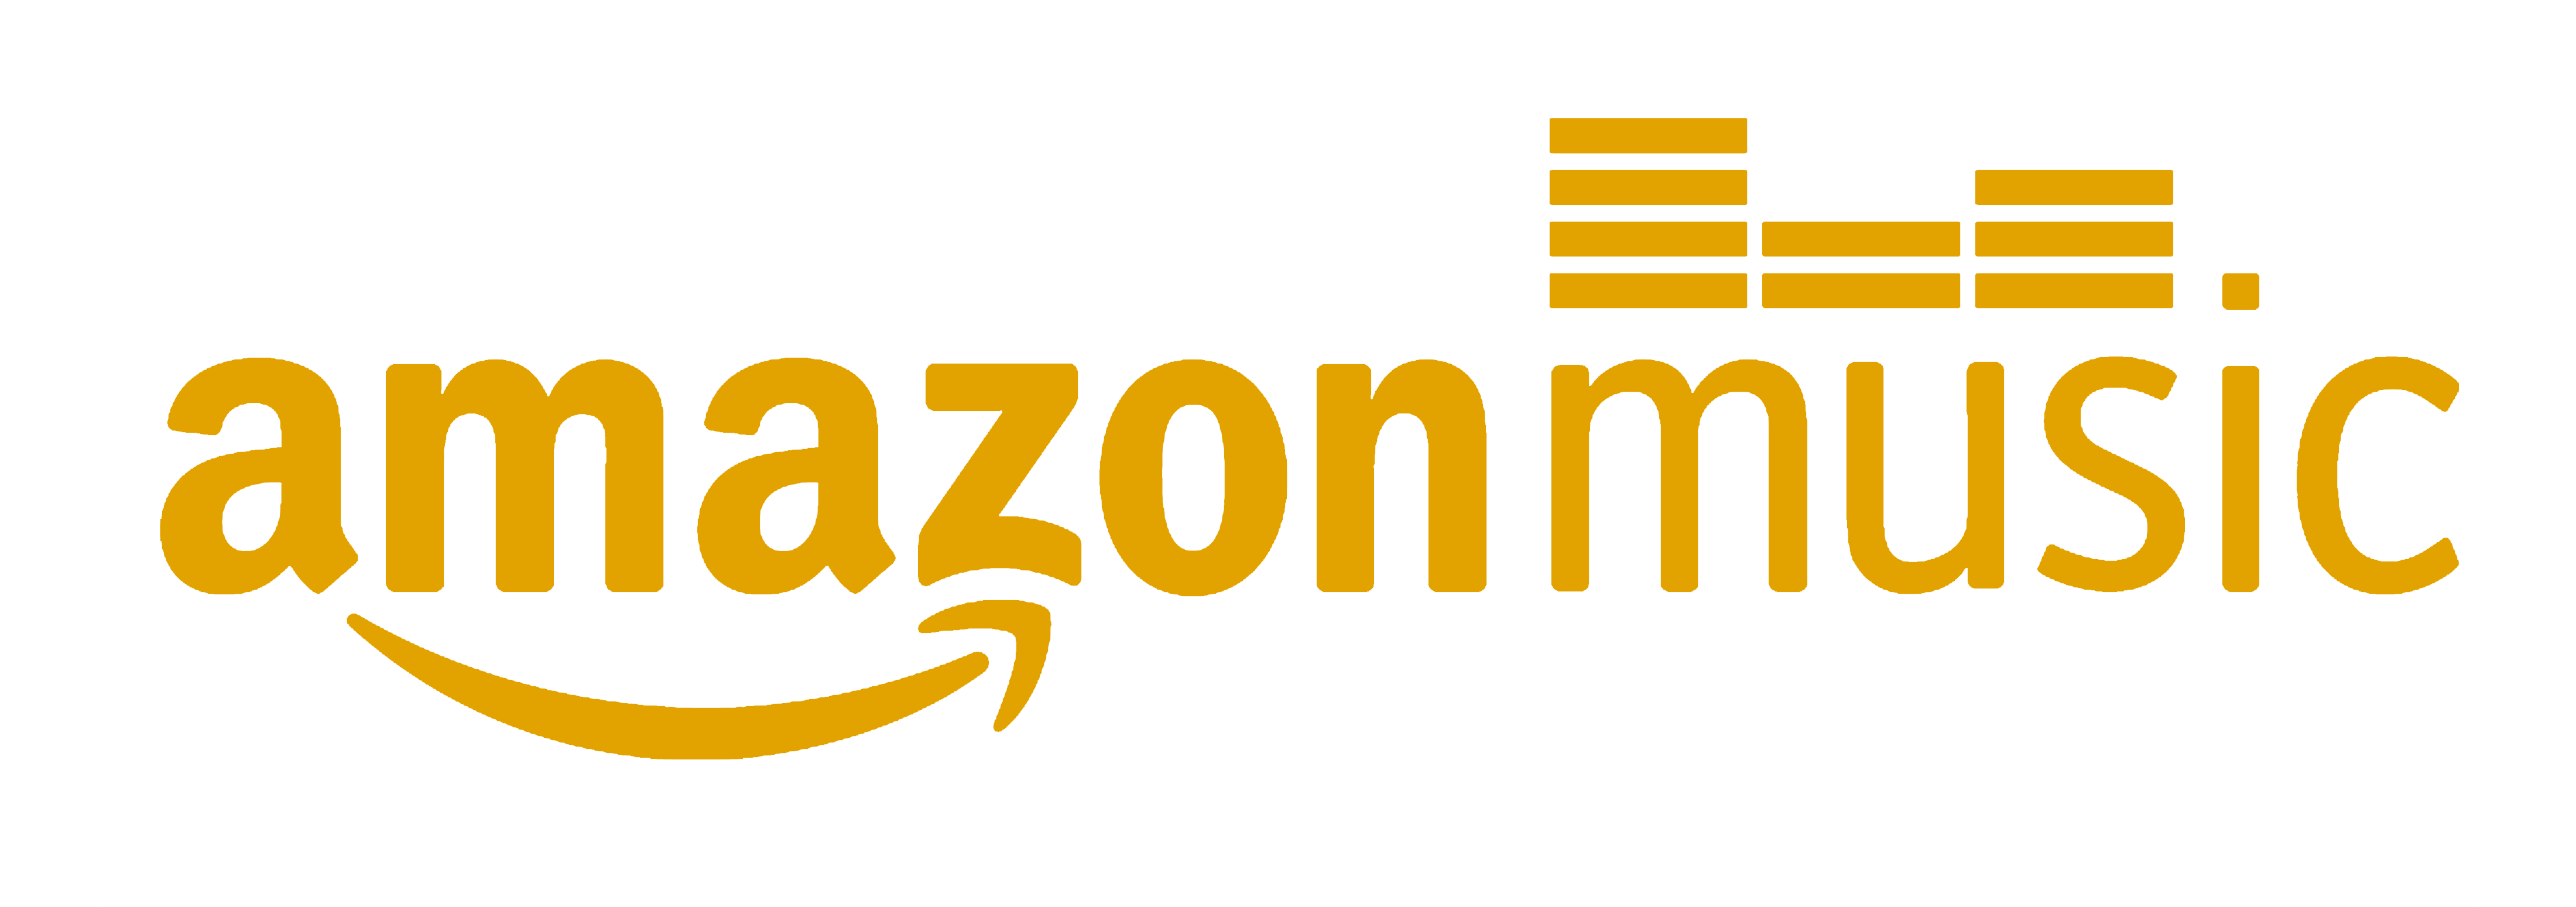 Amazon music logo png. No more support for